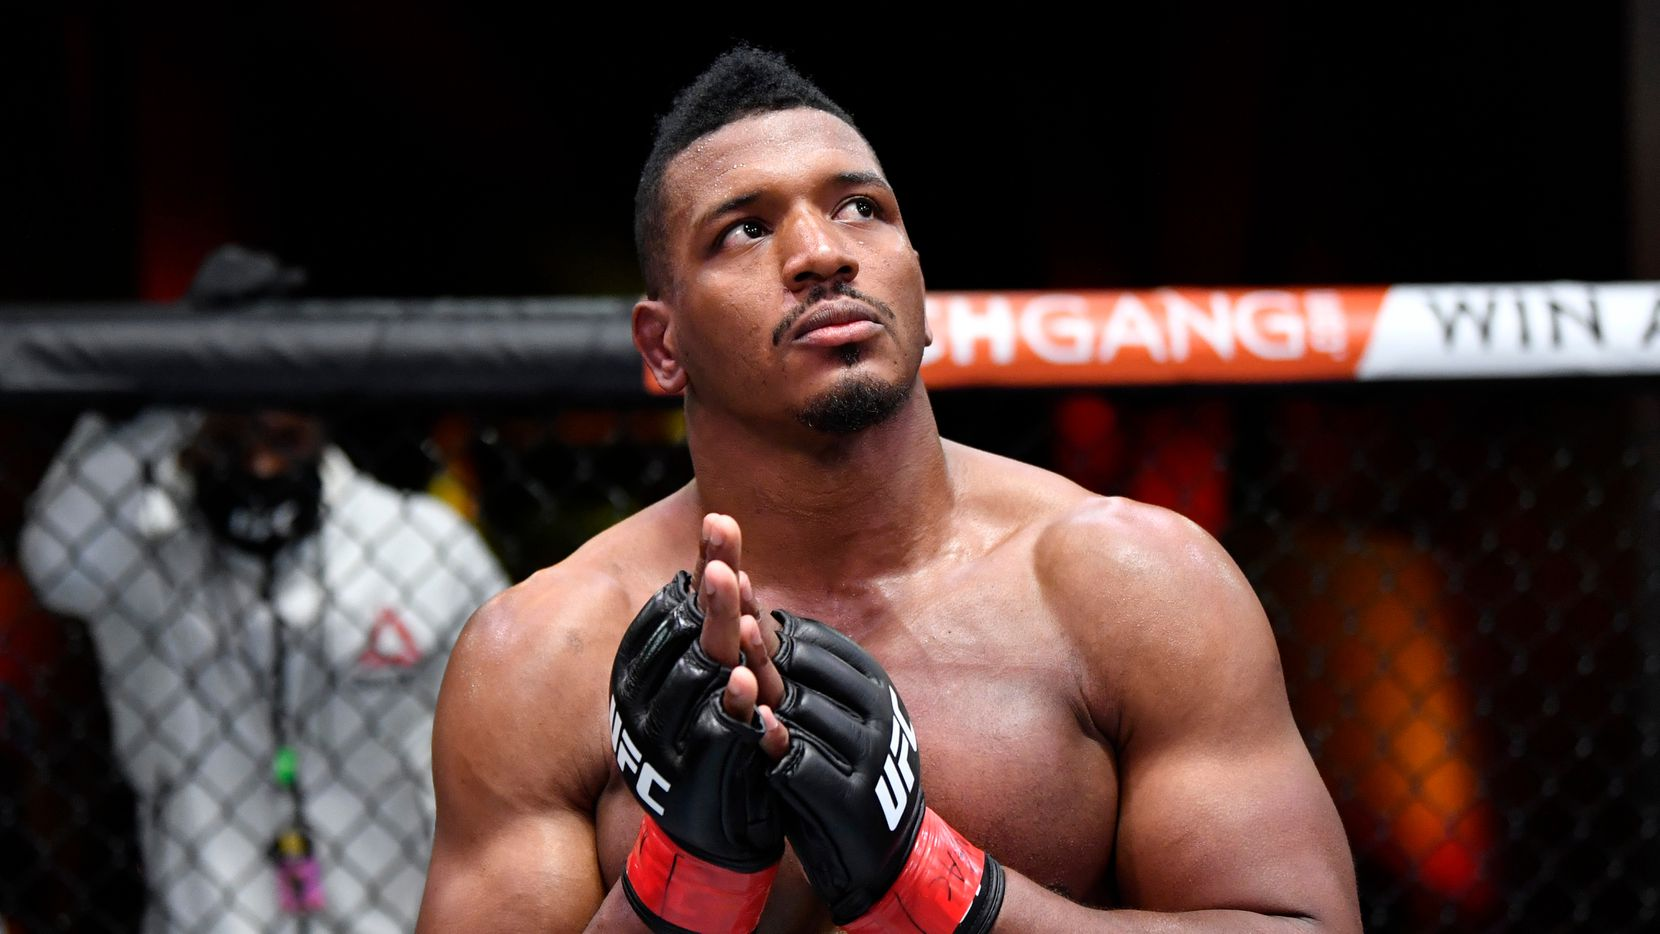 Alonzo Menifield reacts after his submission victory over Fabio Cherant in their light heavyweight fight during the UFC 260 event at UFC APEX on March 27, 2021 in Las Vegas, Nevada.